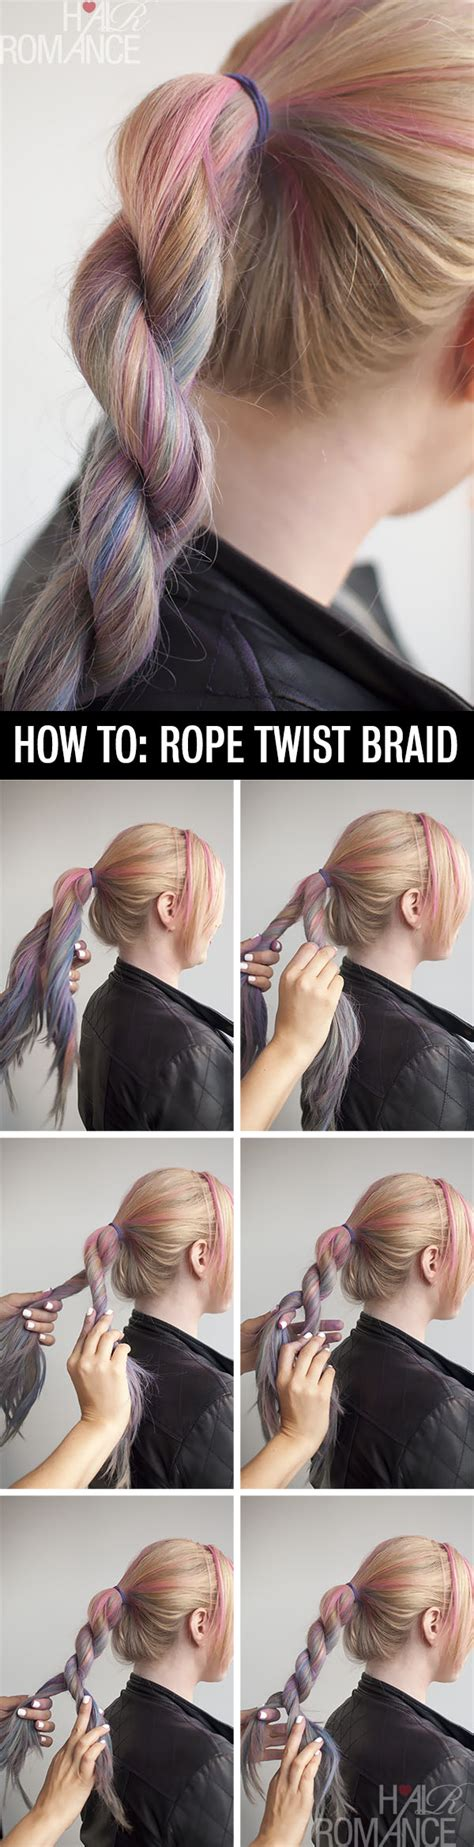 how to twist braid step by step hairstyle tutorial how to do a rope twist braid hair